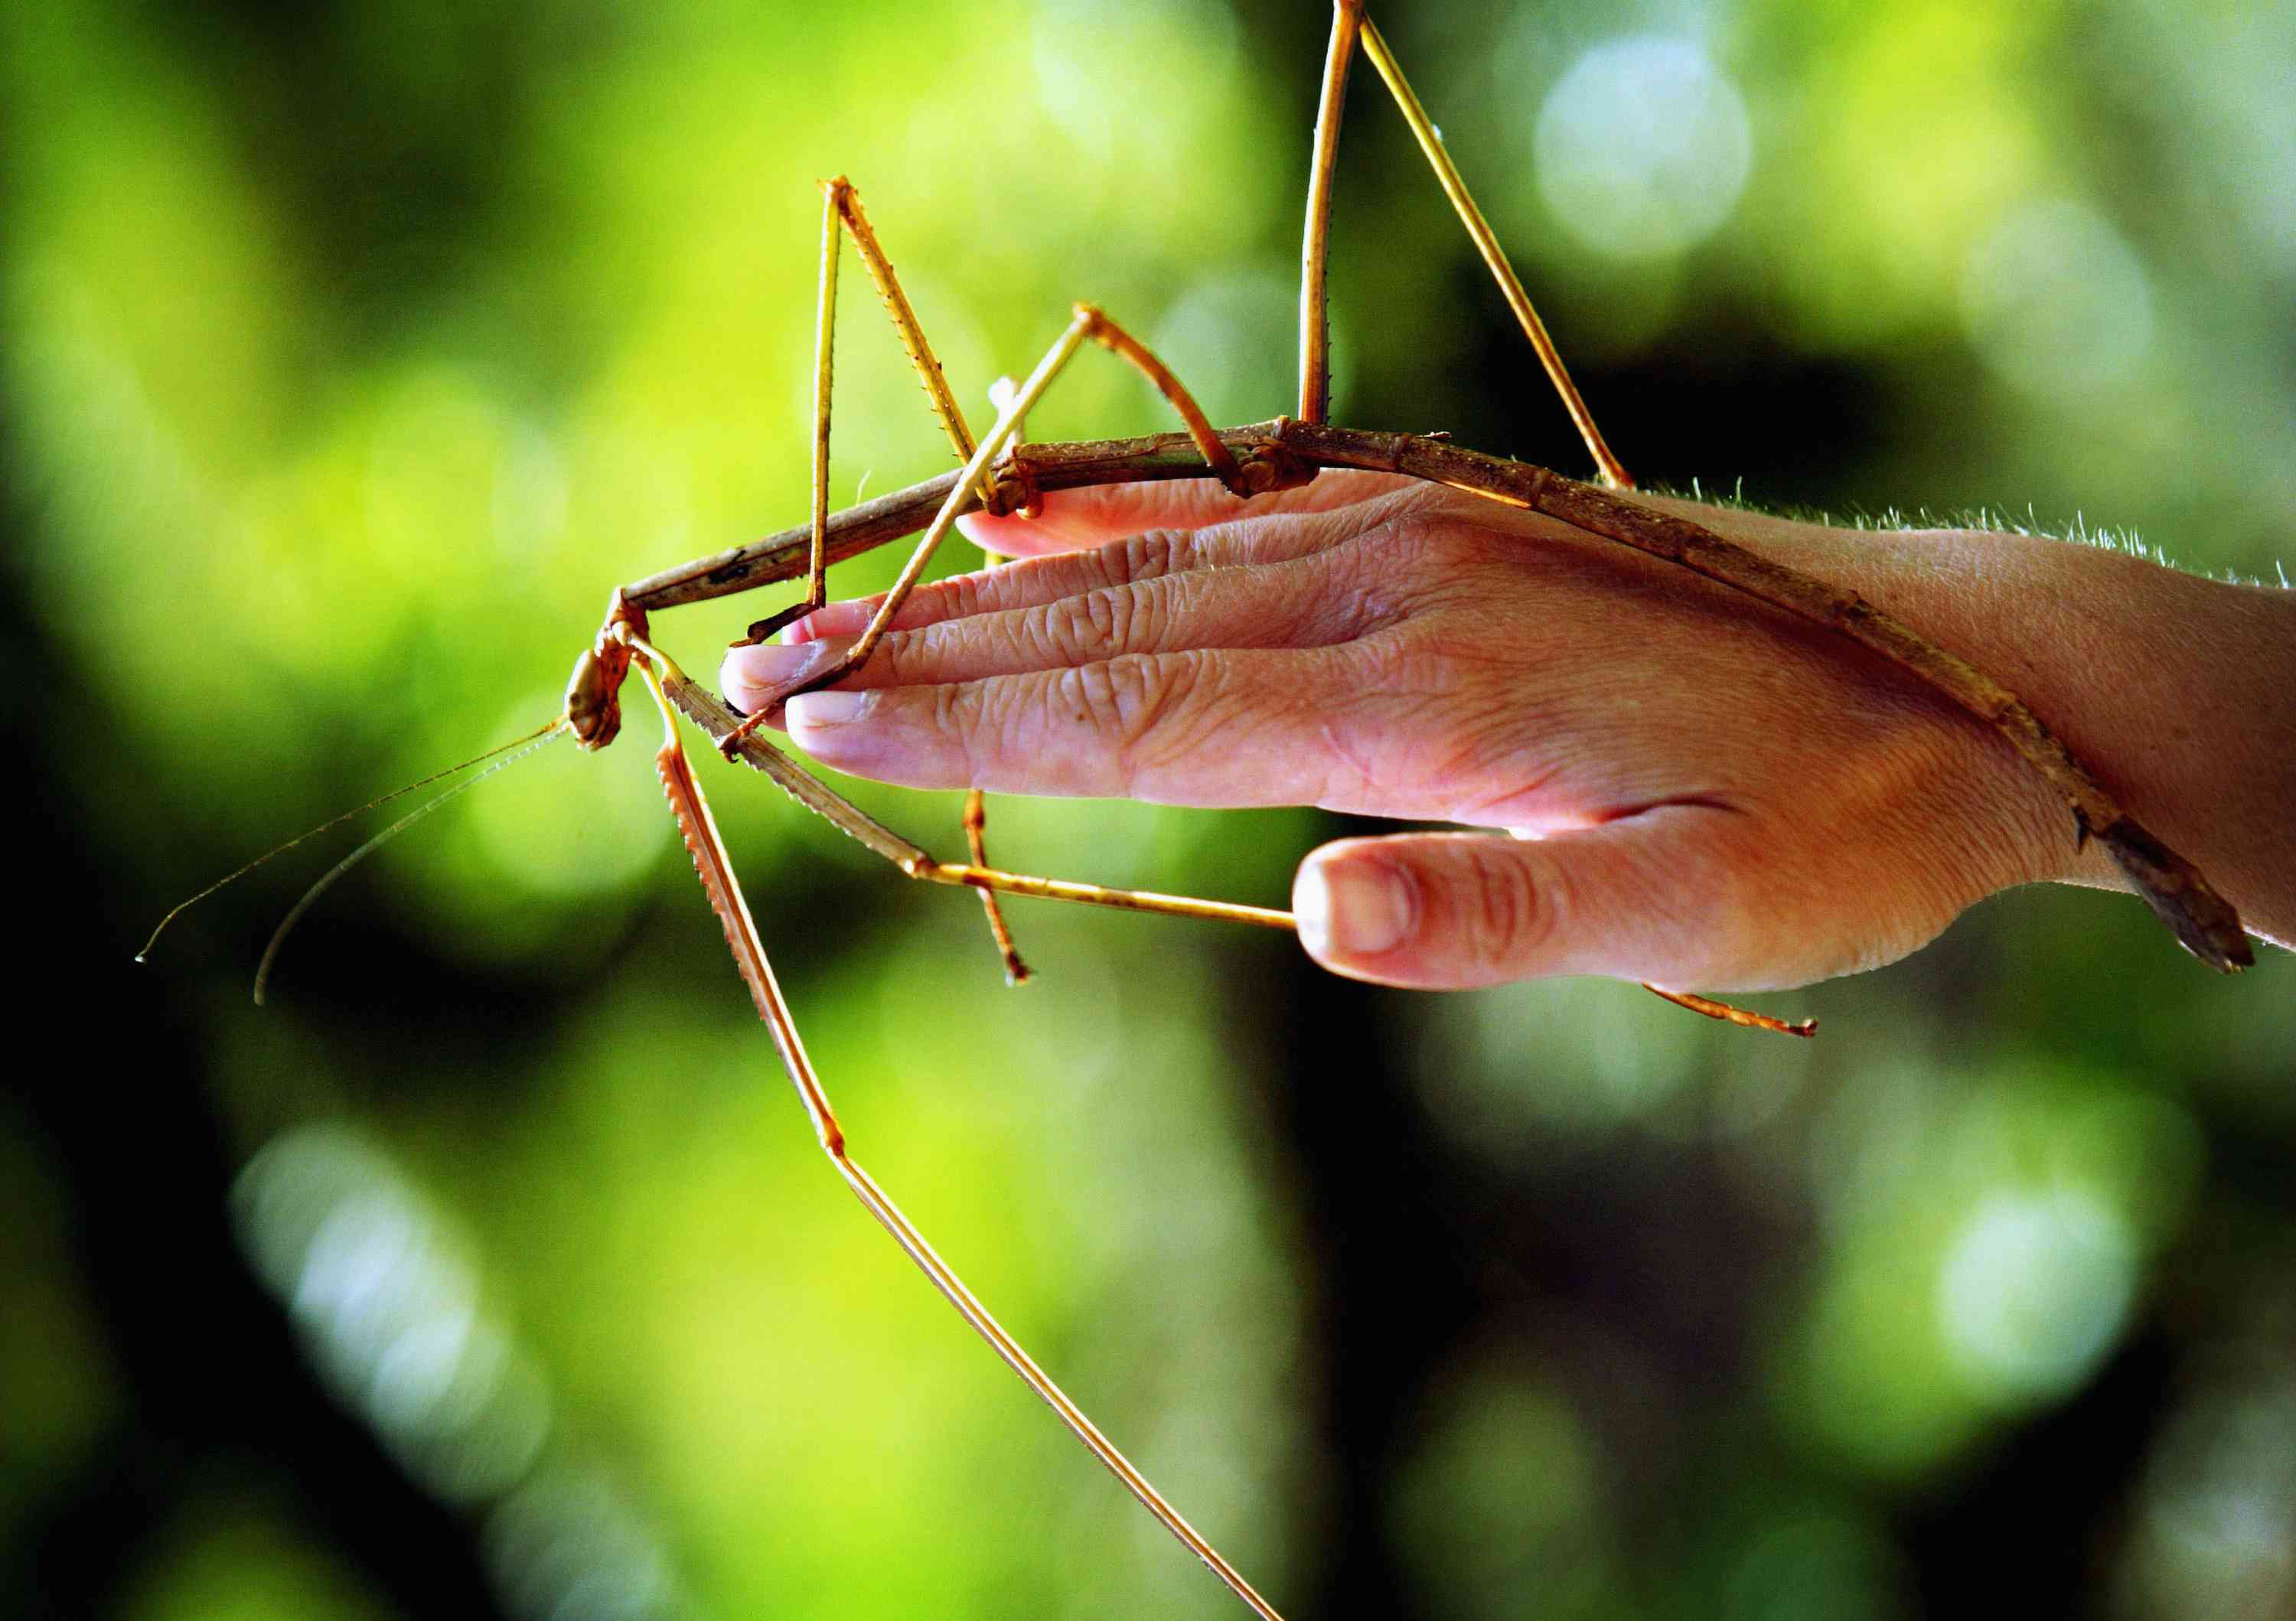 a brown giant stick insect resting on a person's hand